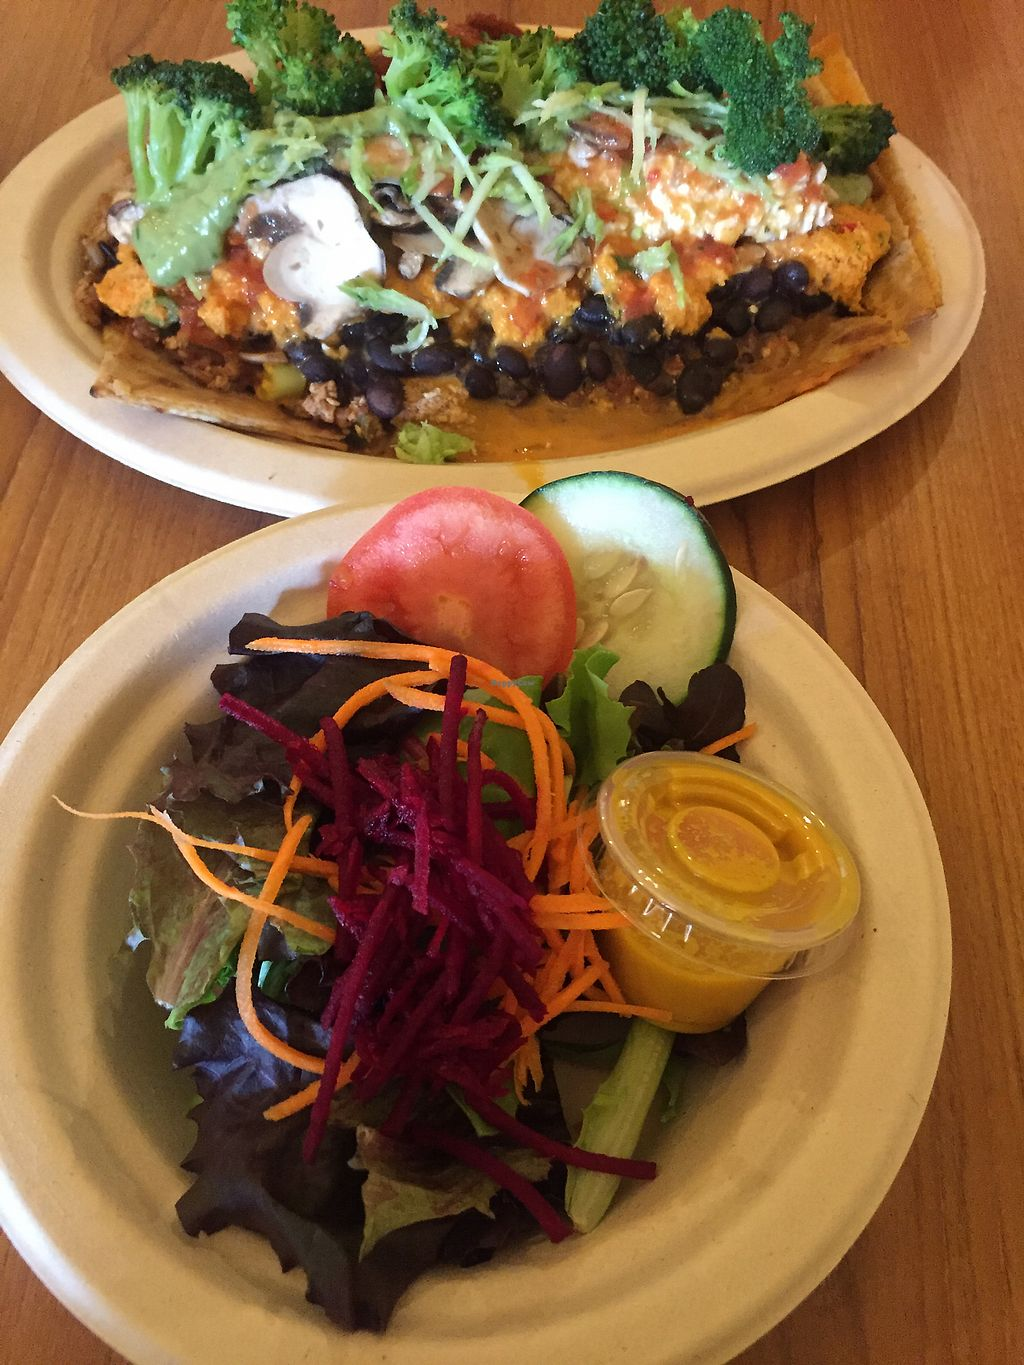 """Photo of Stuff I Eat  by <a href=""""/members/profile/R-MV"""">R-MV</a> <br/>Kilimanjaro Quesadilla and side salad <br/> August 14, 2017  - <a href='/contact/abuse/image/14920/292464'>Report</a>"""